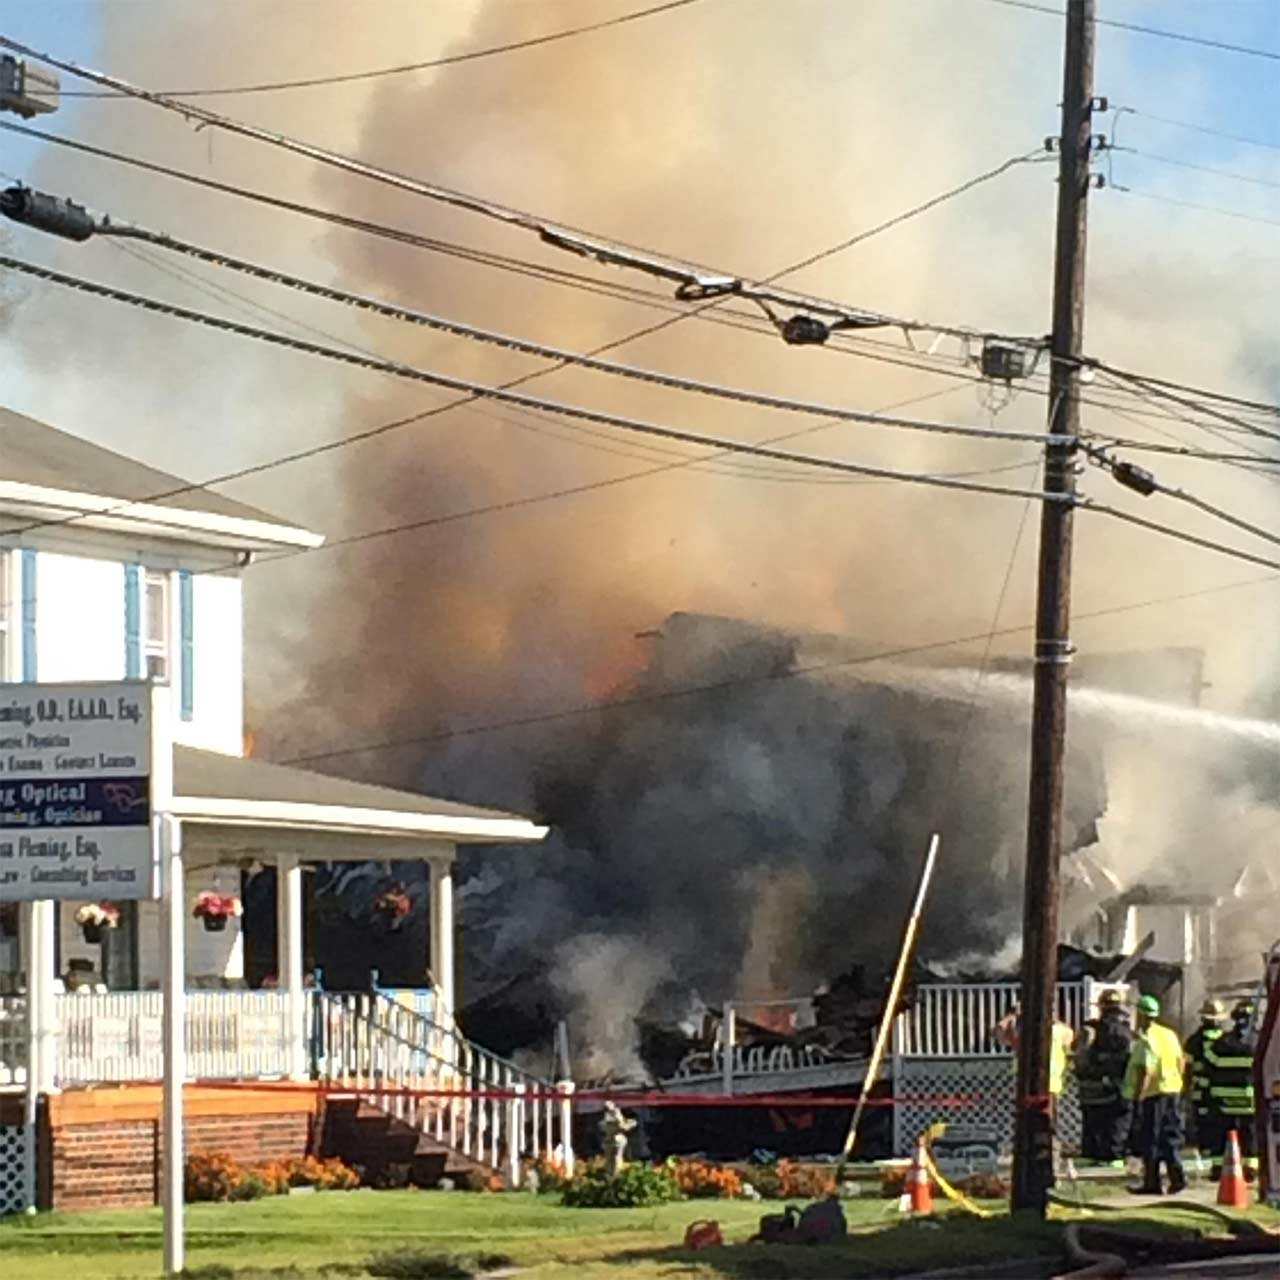 "<div class=""meta image-caption""><div class=""origin-logo origin-image none""><span>none</span></div><span class=""caption-text"">Pictured: Action News viewer photo after a building explosion in Pennsville, New Jersey on Tuesday, September 15, 2015.</span></div>"